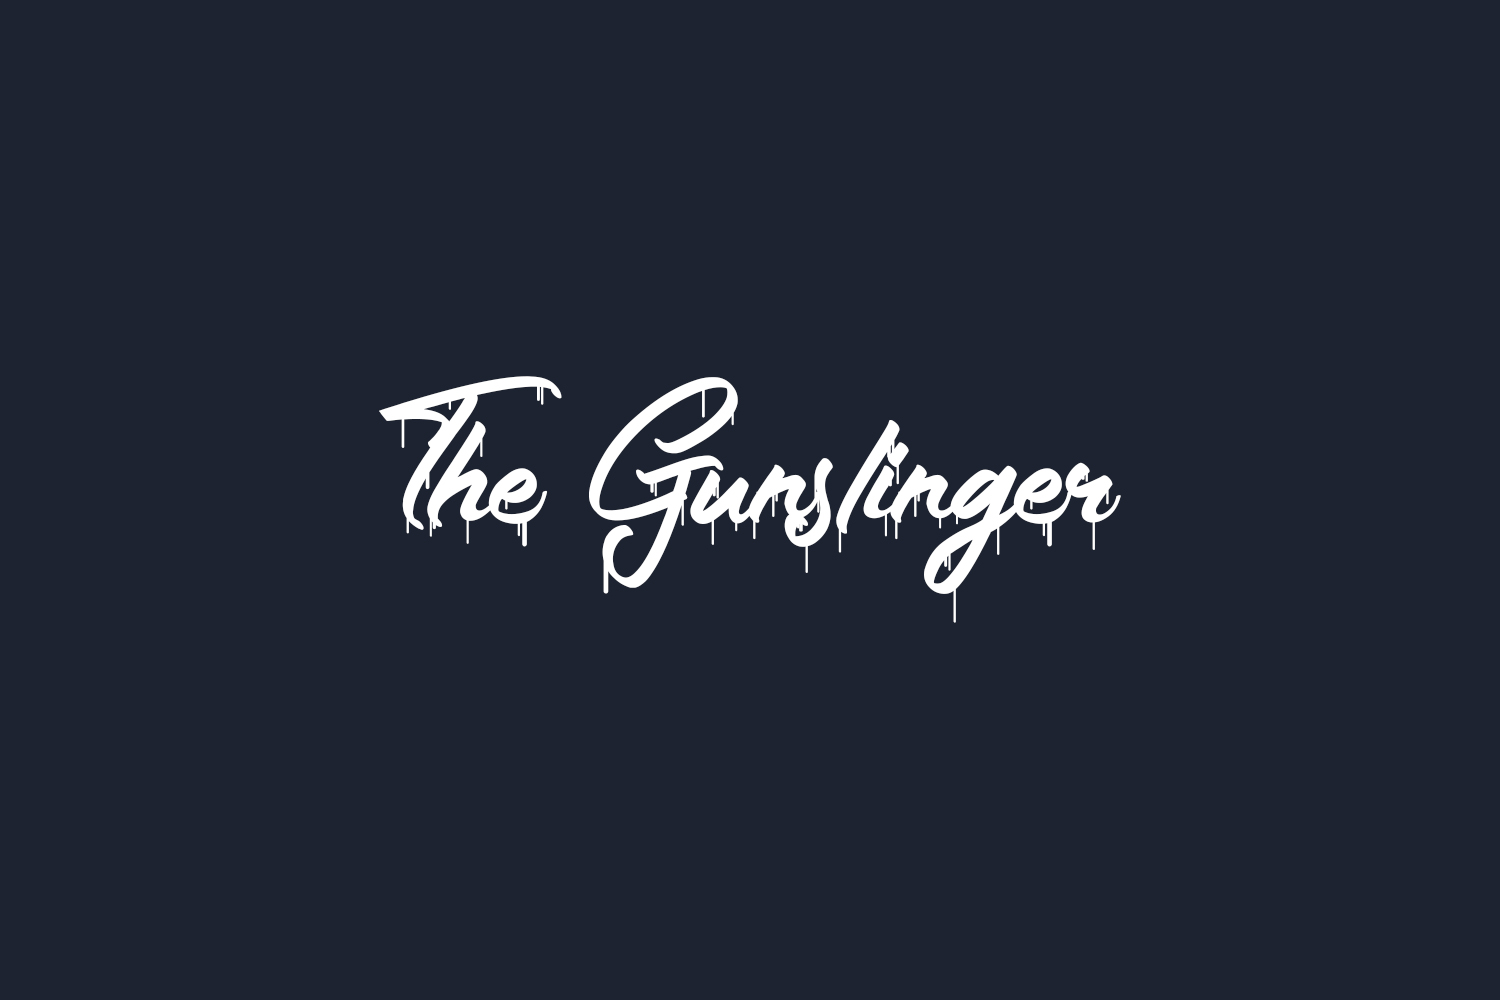 The Gunslinger Waterdrop Free Font